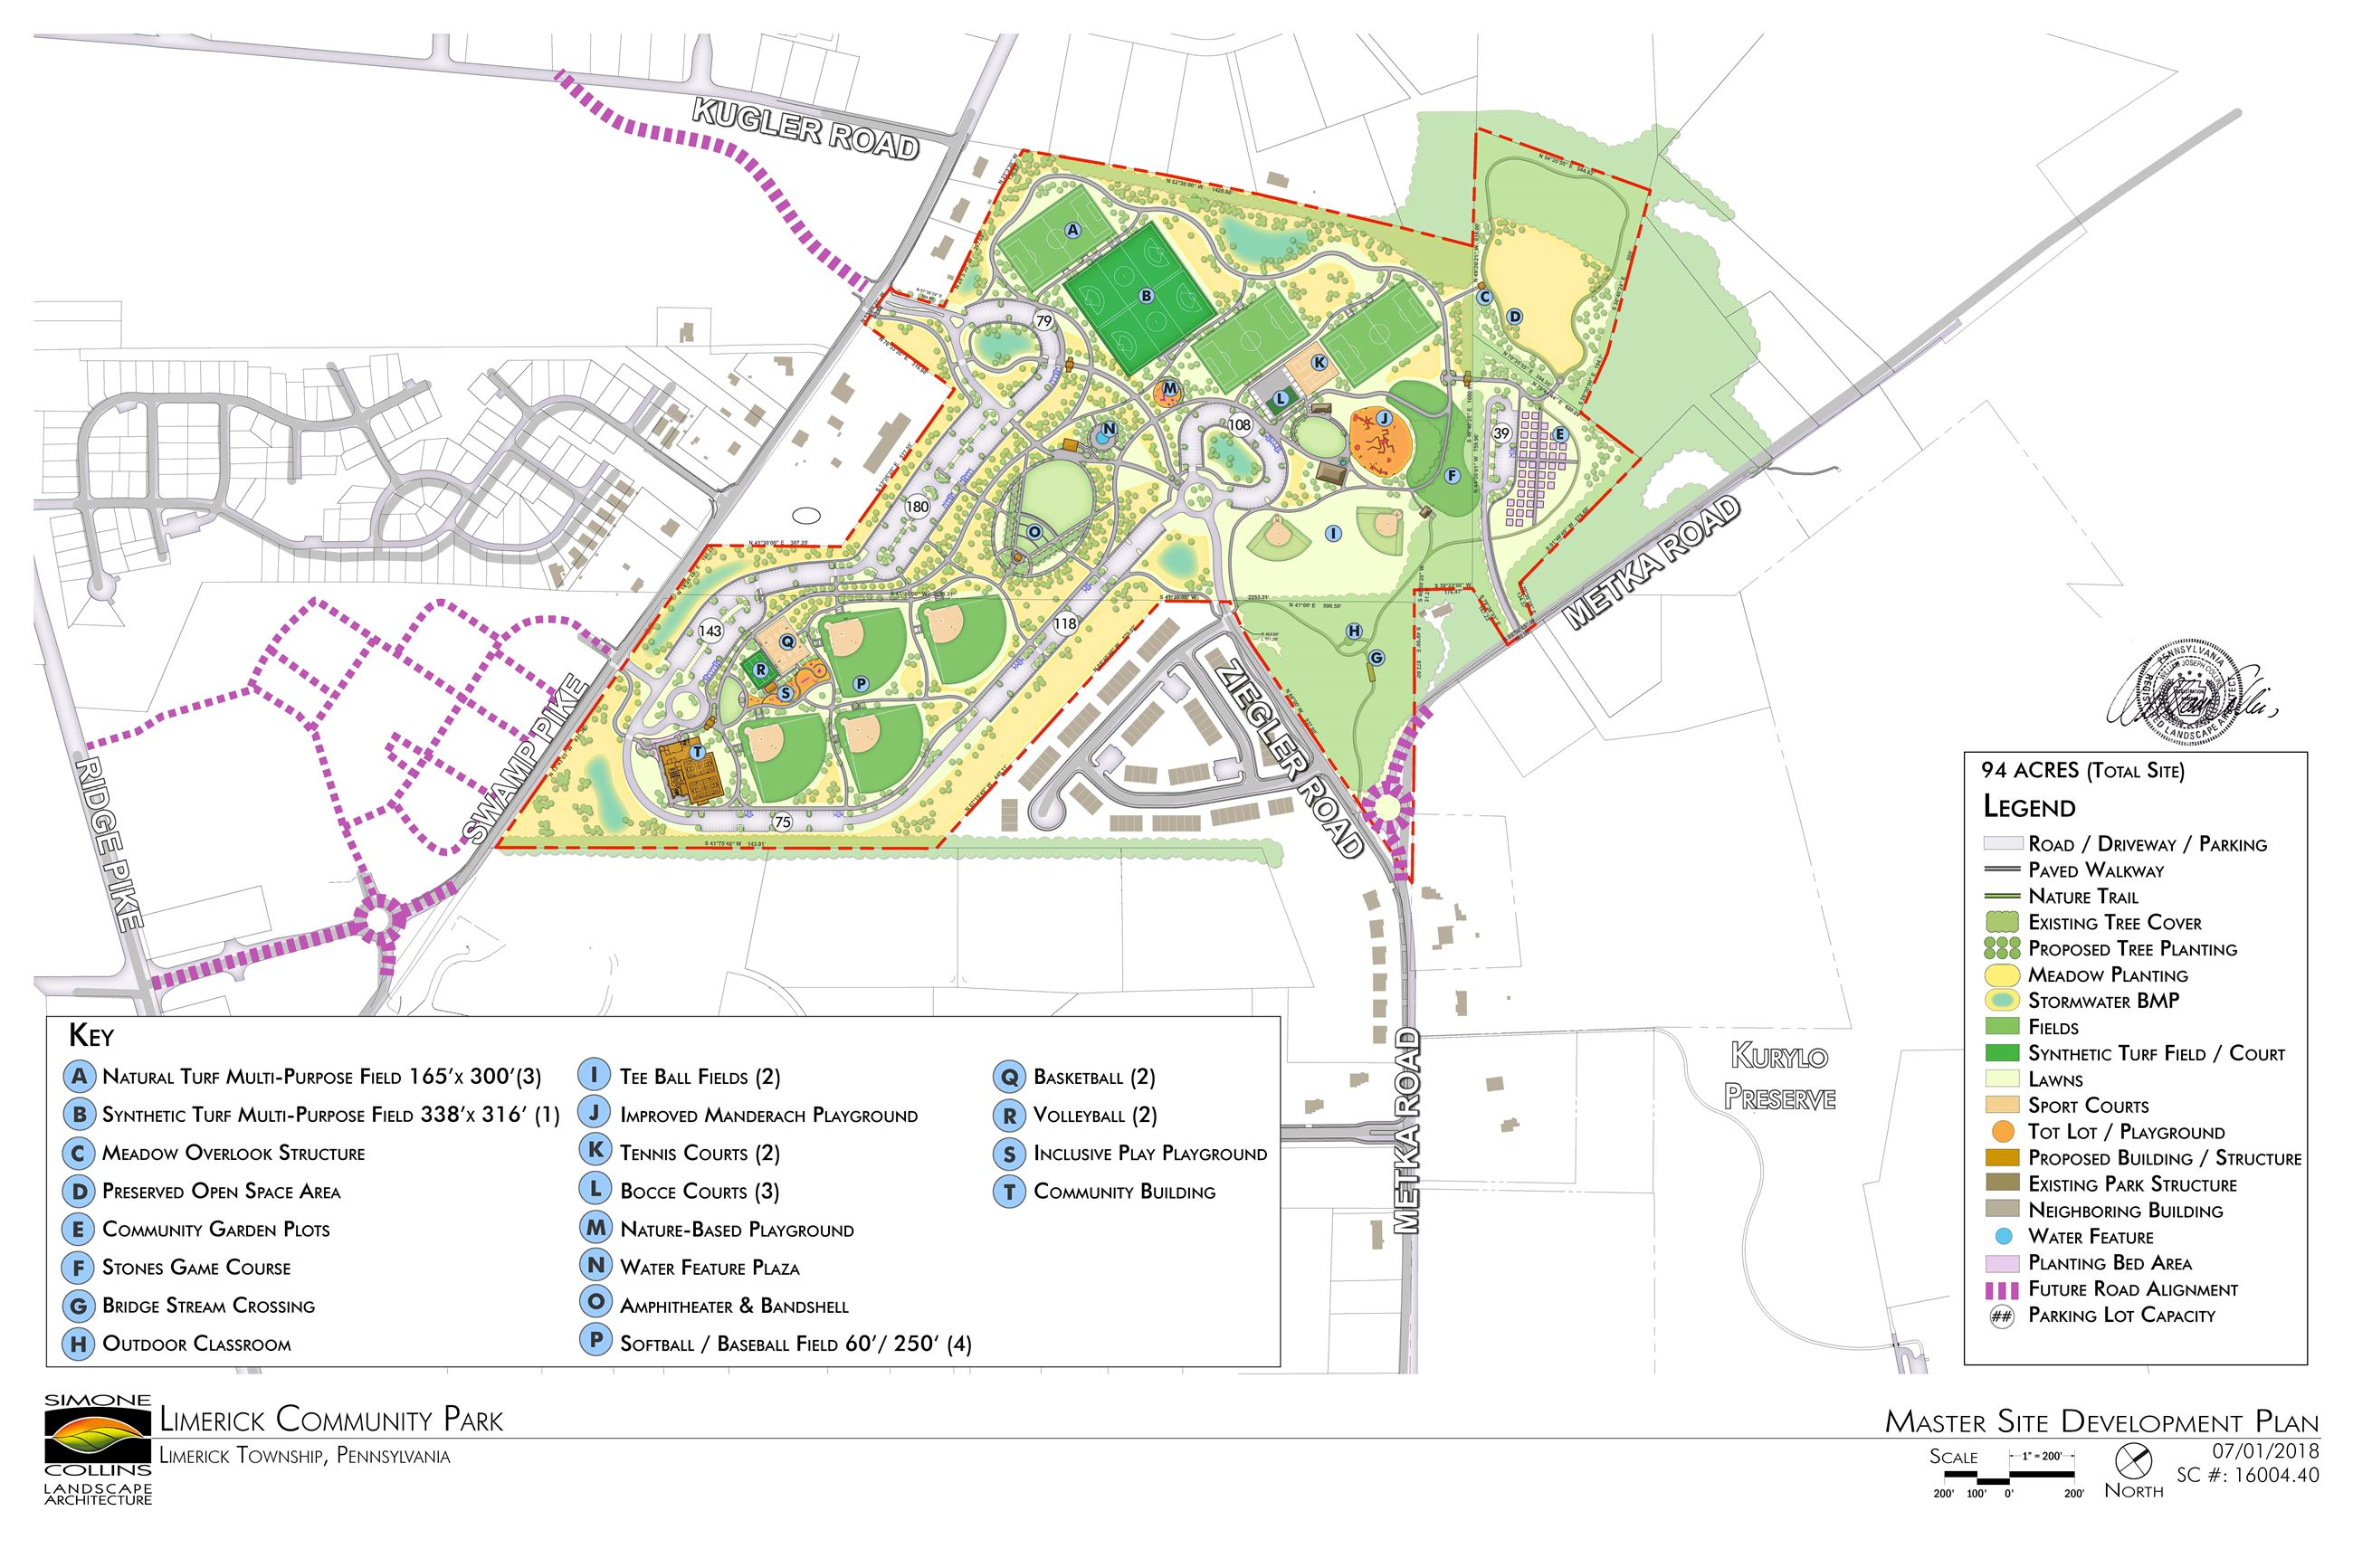 Limerick Community Park Maste Site Plan - Final